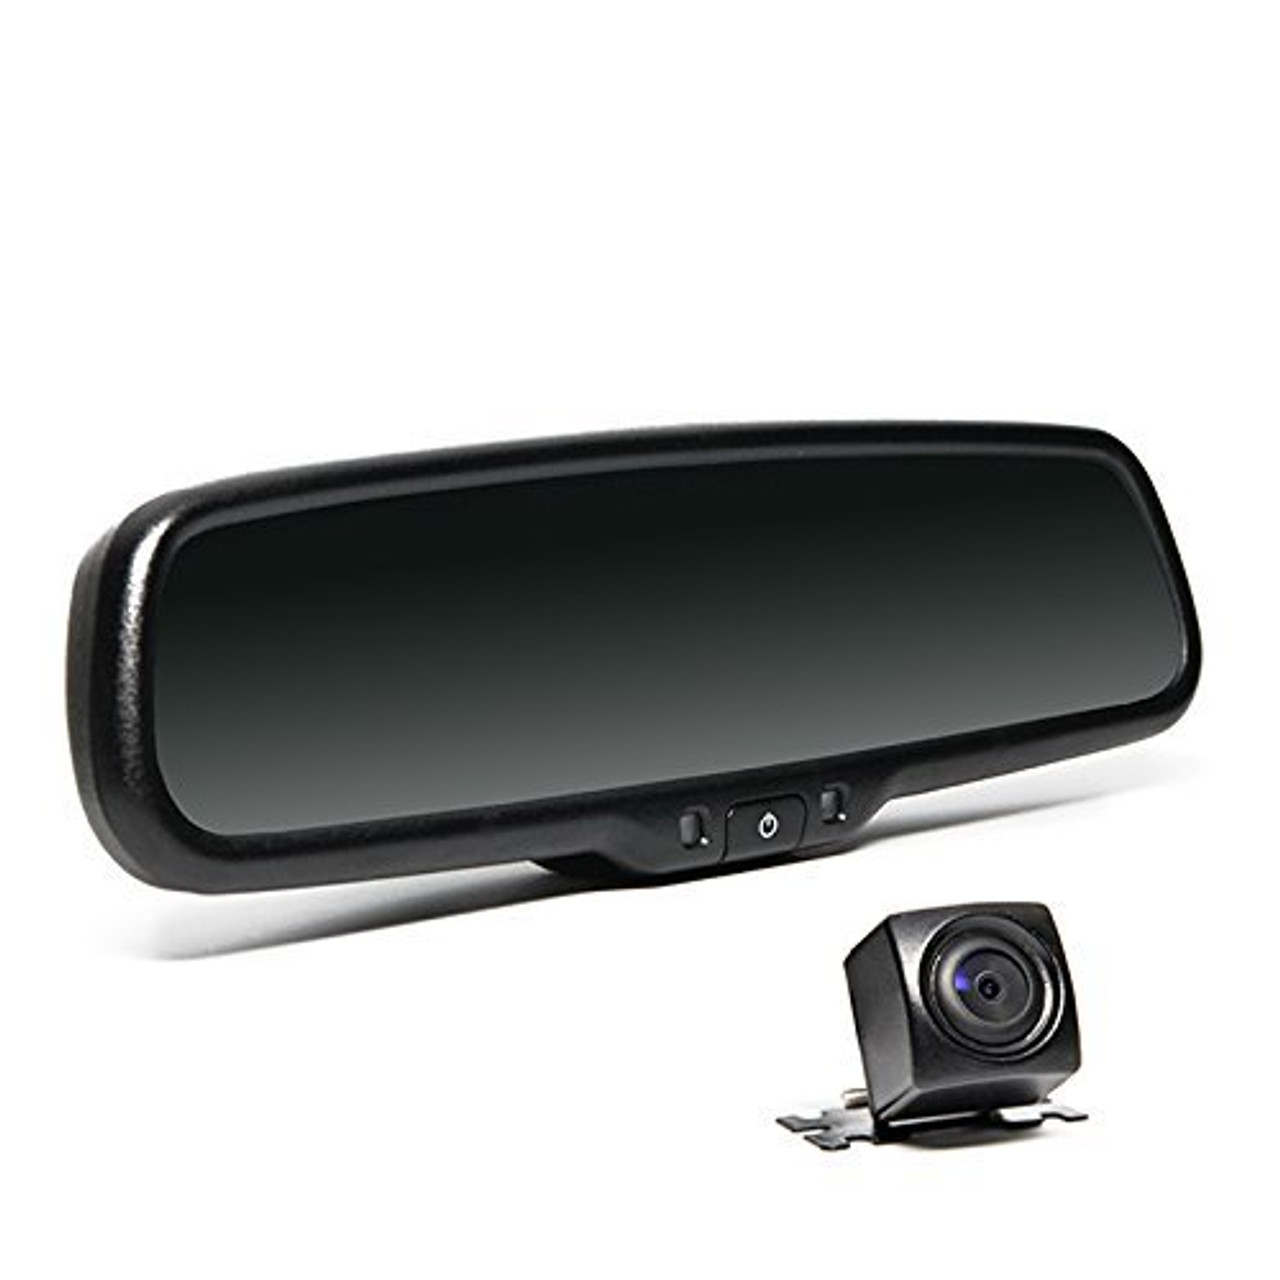 Rear View Safety OEM G-Series Backup Camera System with 4.3-Inch LCD Display RVS-776718 (Black) | 0927VQZC5RY